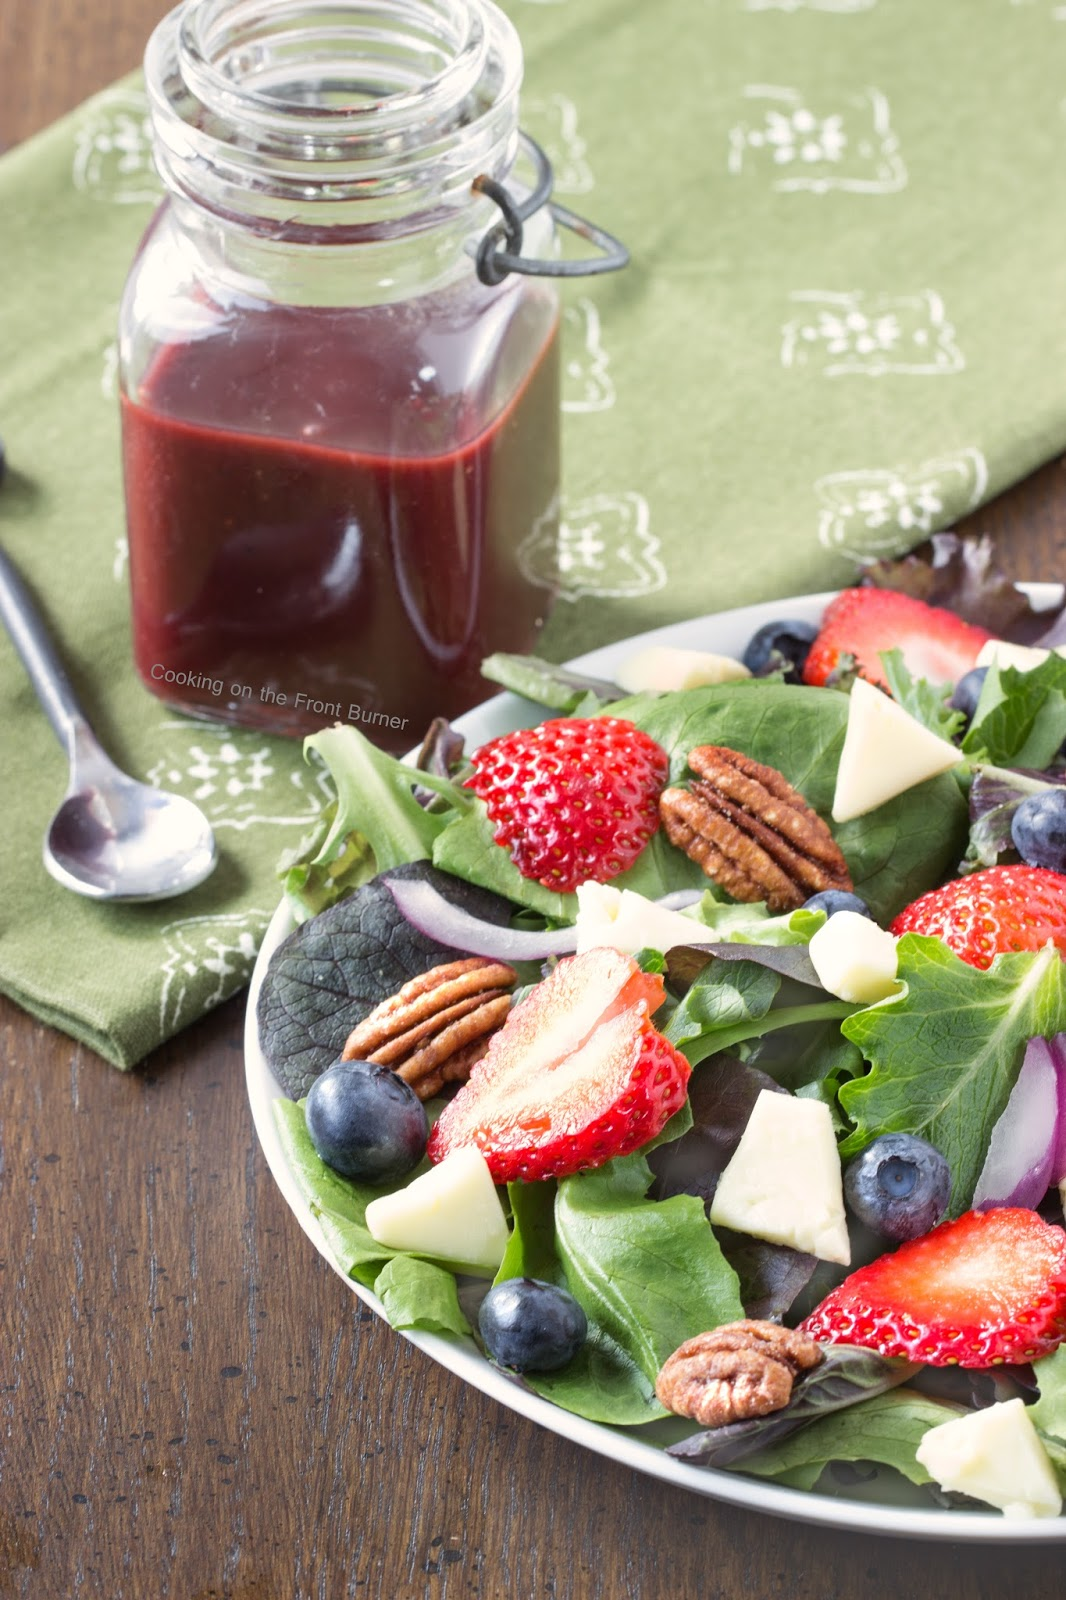 Berry Brie Salad with Blackberry Vinaigrette | Cooking on the Front Burner #sidedish